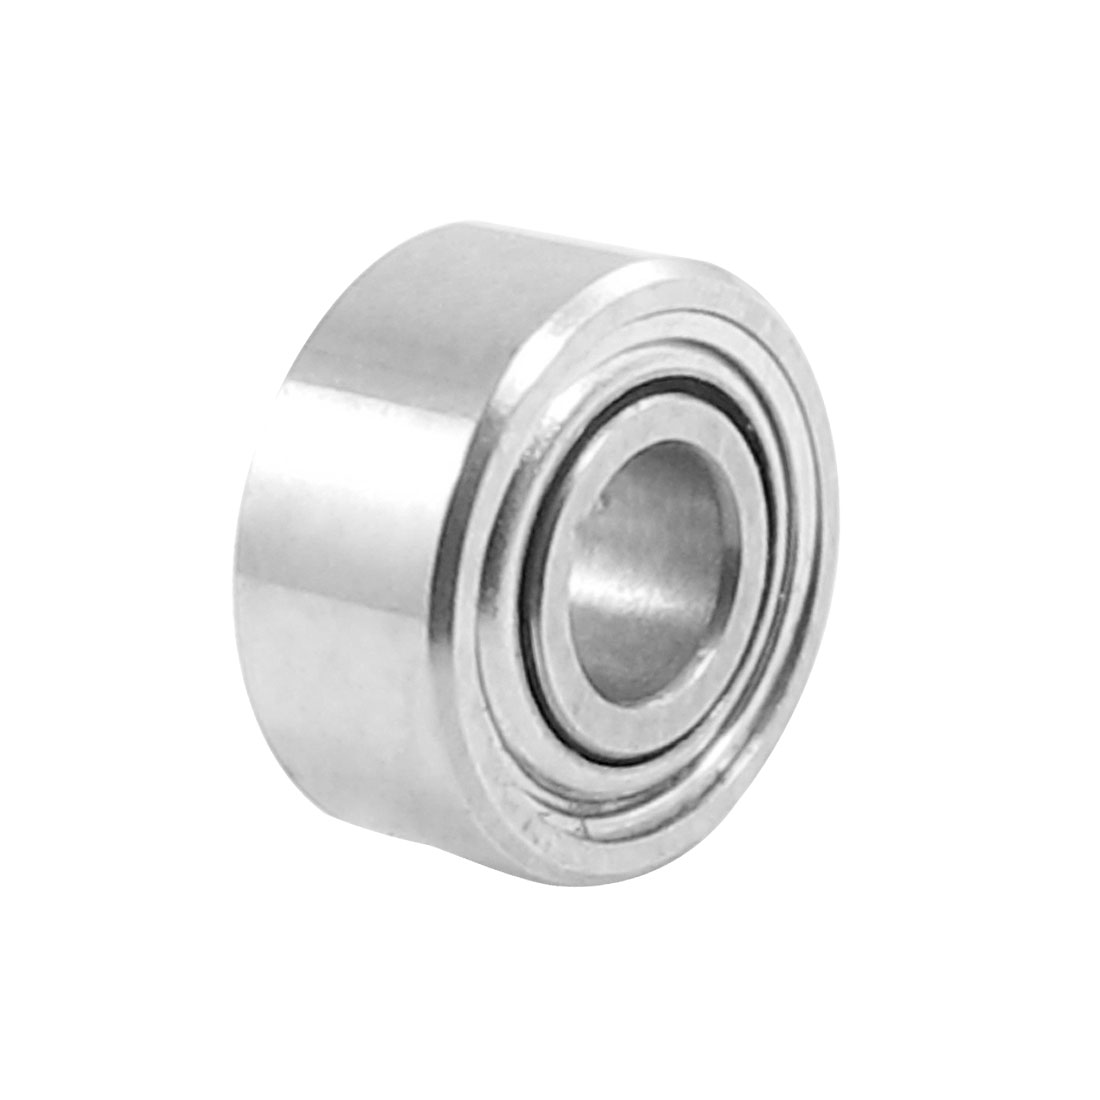 5mm-x-2mm-x-2-3mm-Metal-Shields-Deep-Groove-Ball-Bearing-Silver-Tone